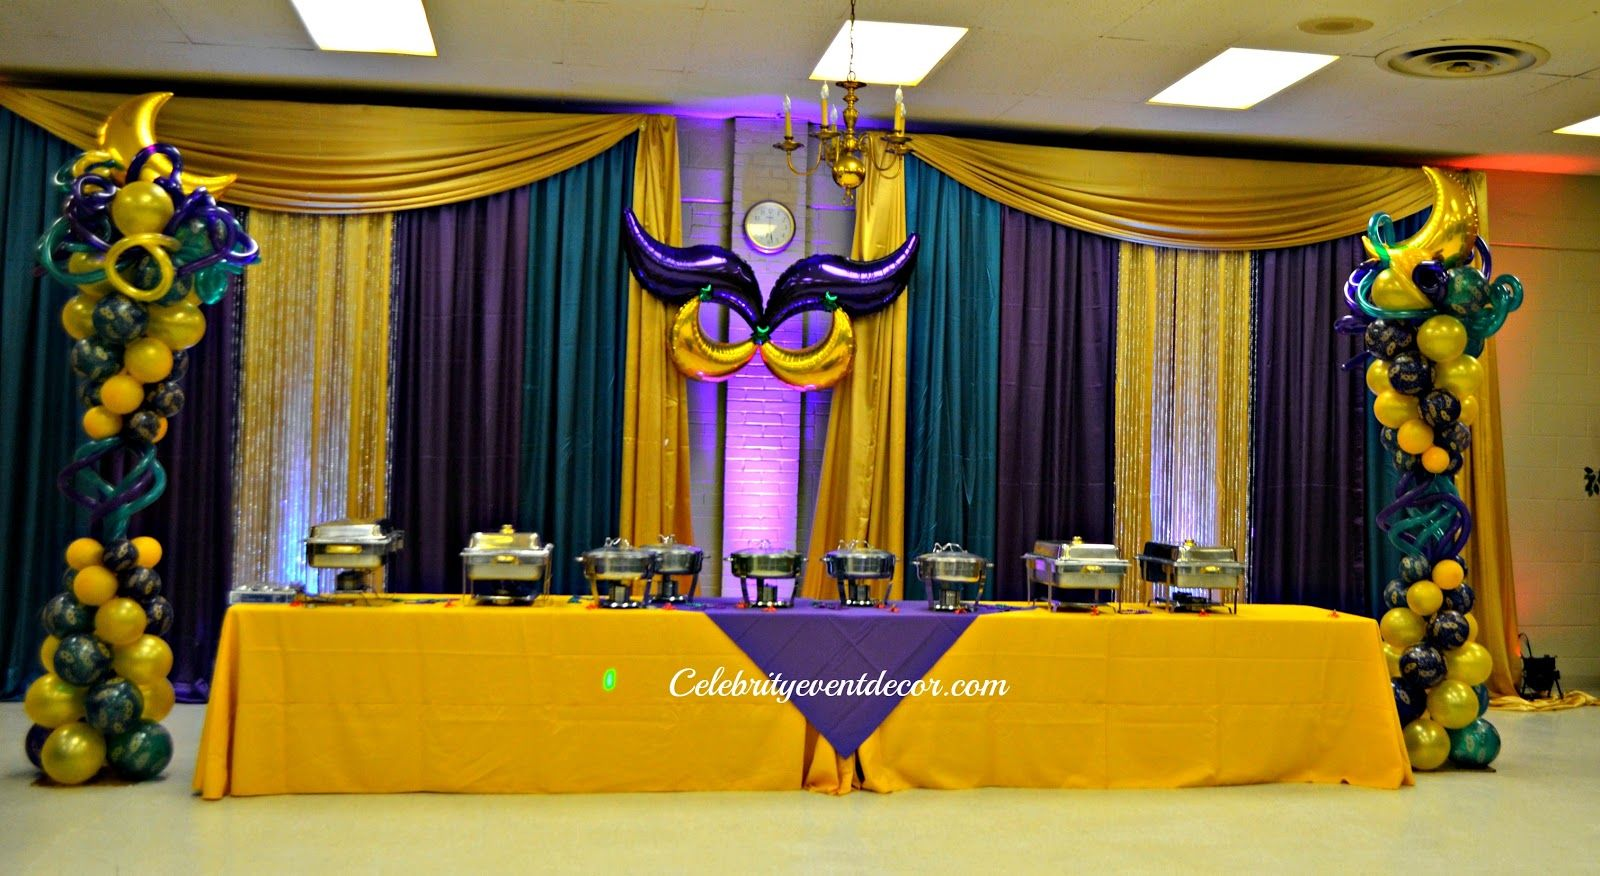 Mardi Gras Decorations | Mardi+Gras+Decorations.jpg | 8th grade ...